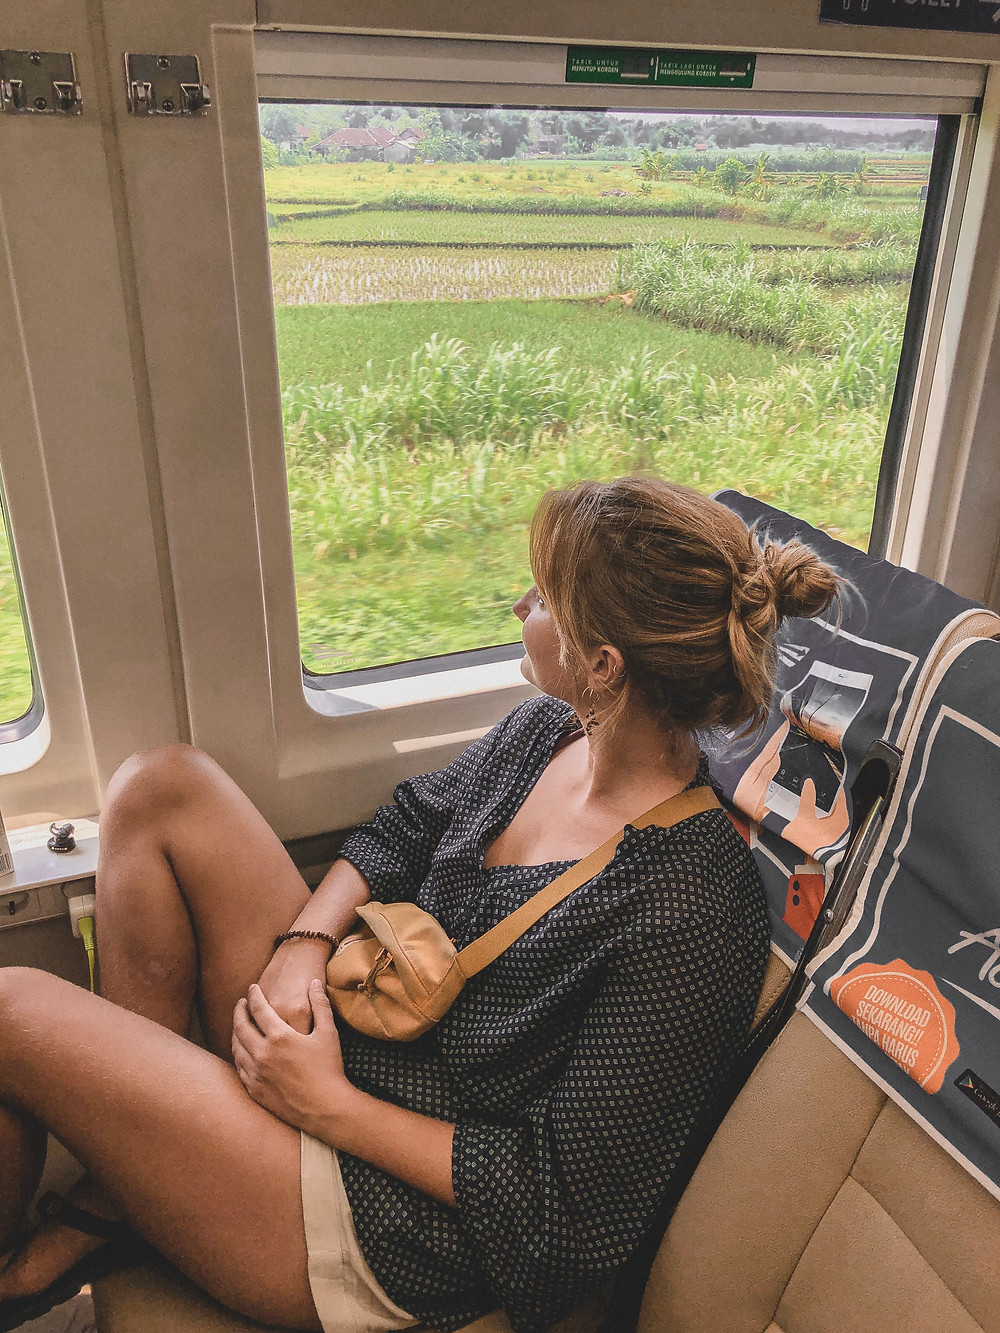 Woman in train looking out the window on ricefields